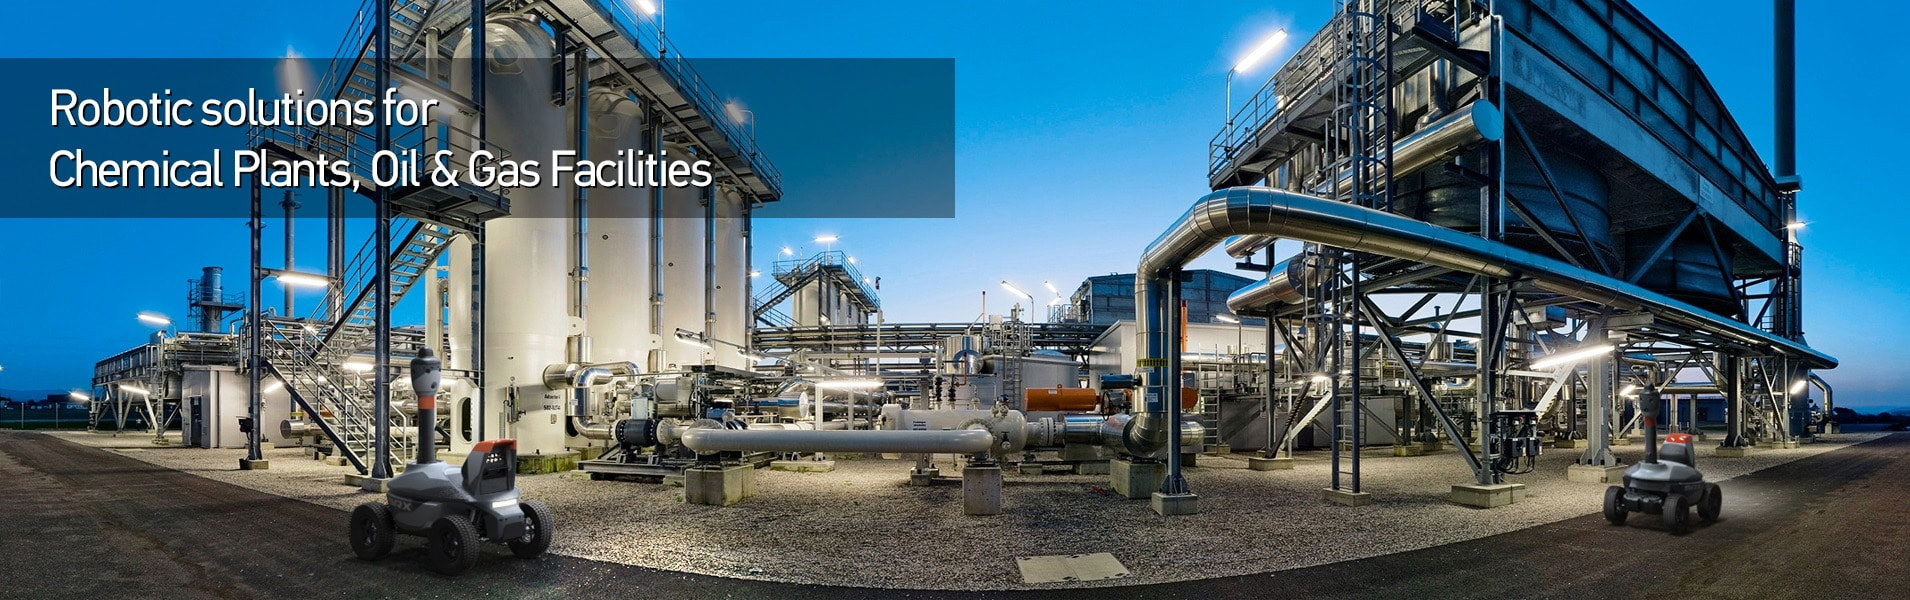 Chemical Plants, Oil & Gas Facilities: Leak Detection